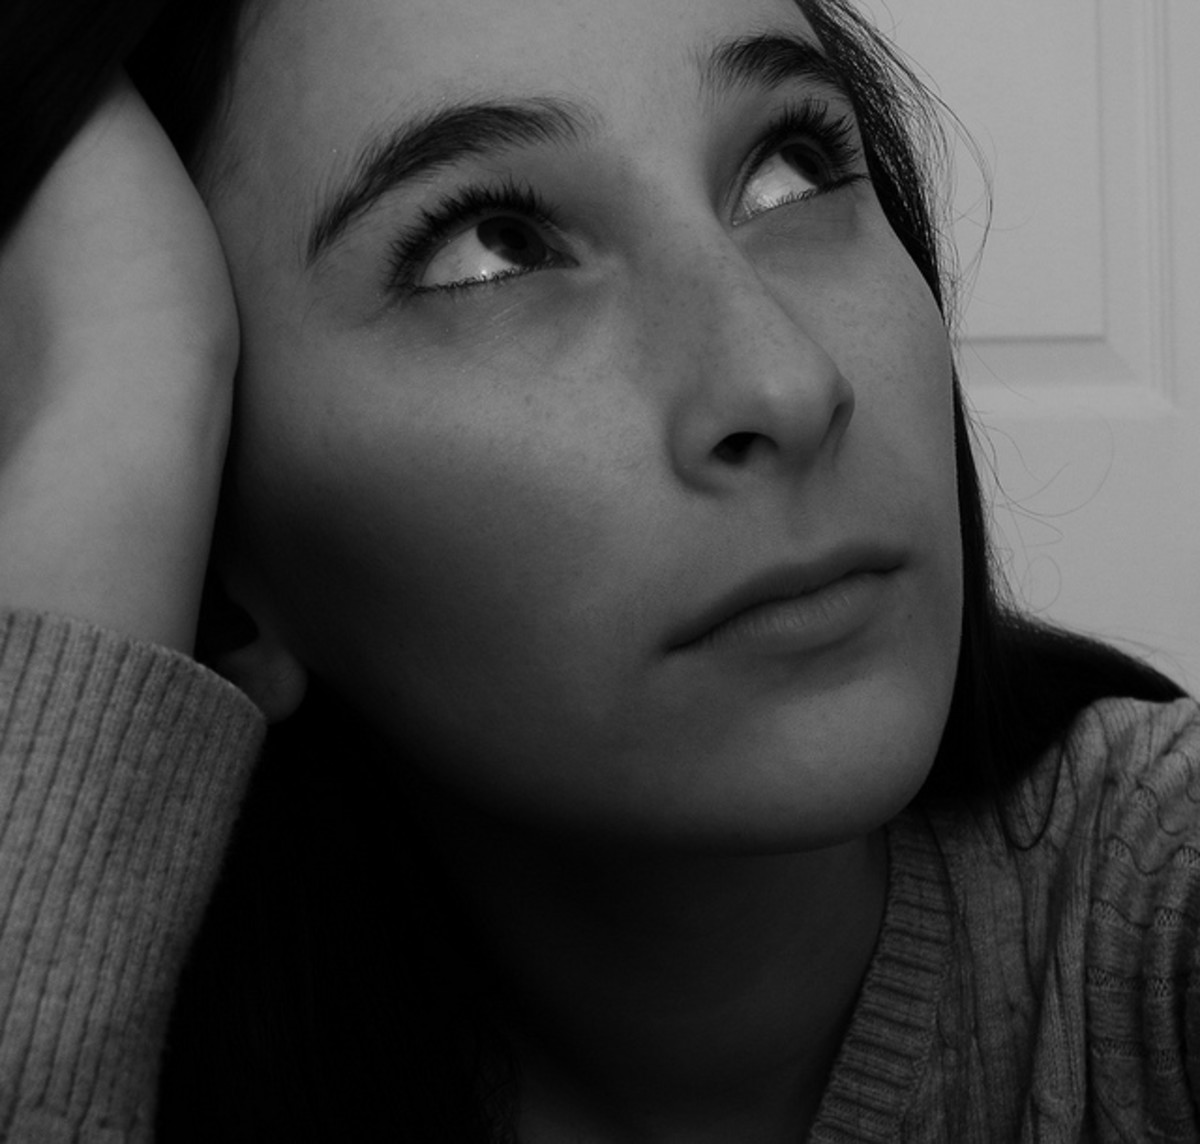 In deep thought, the poet waits for poetic inspiration to emerge internally, then externally.